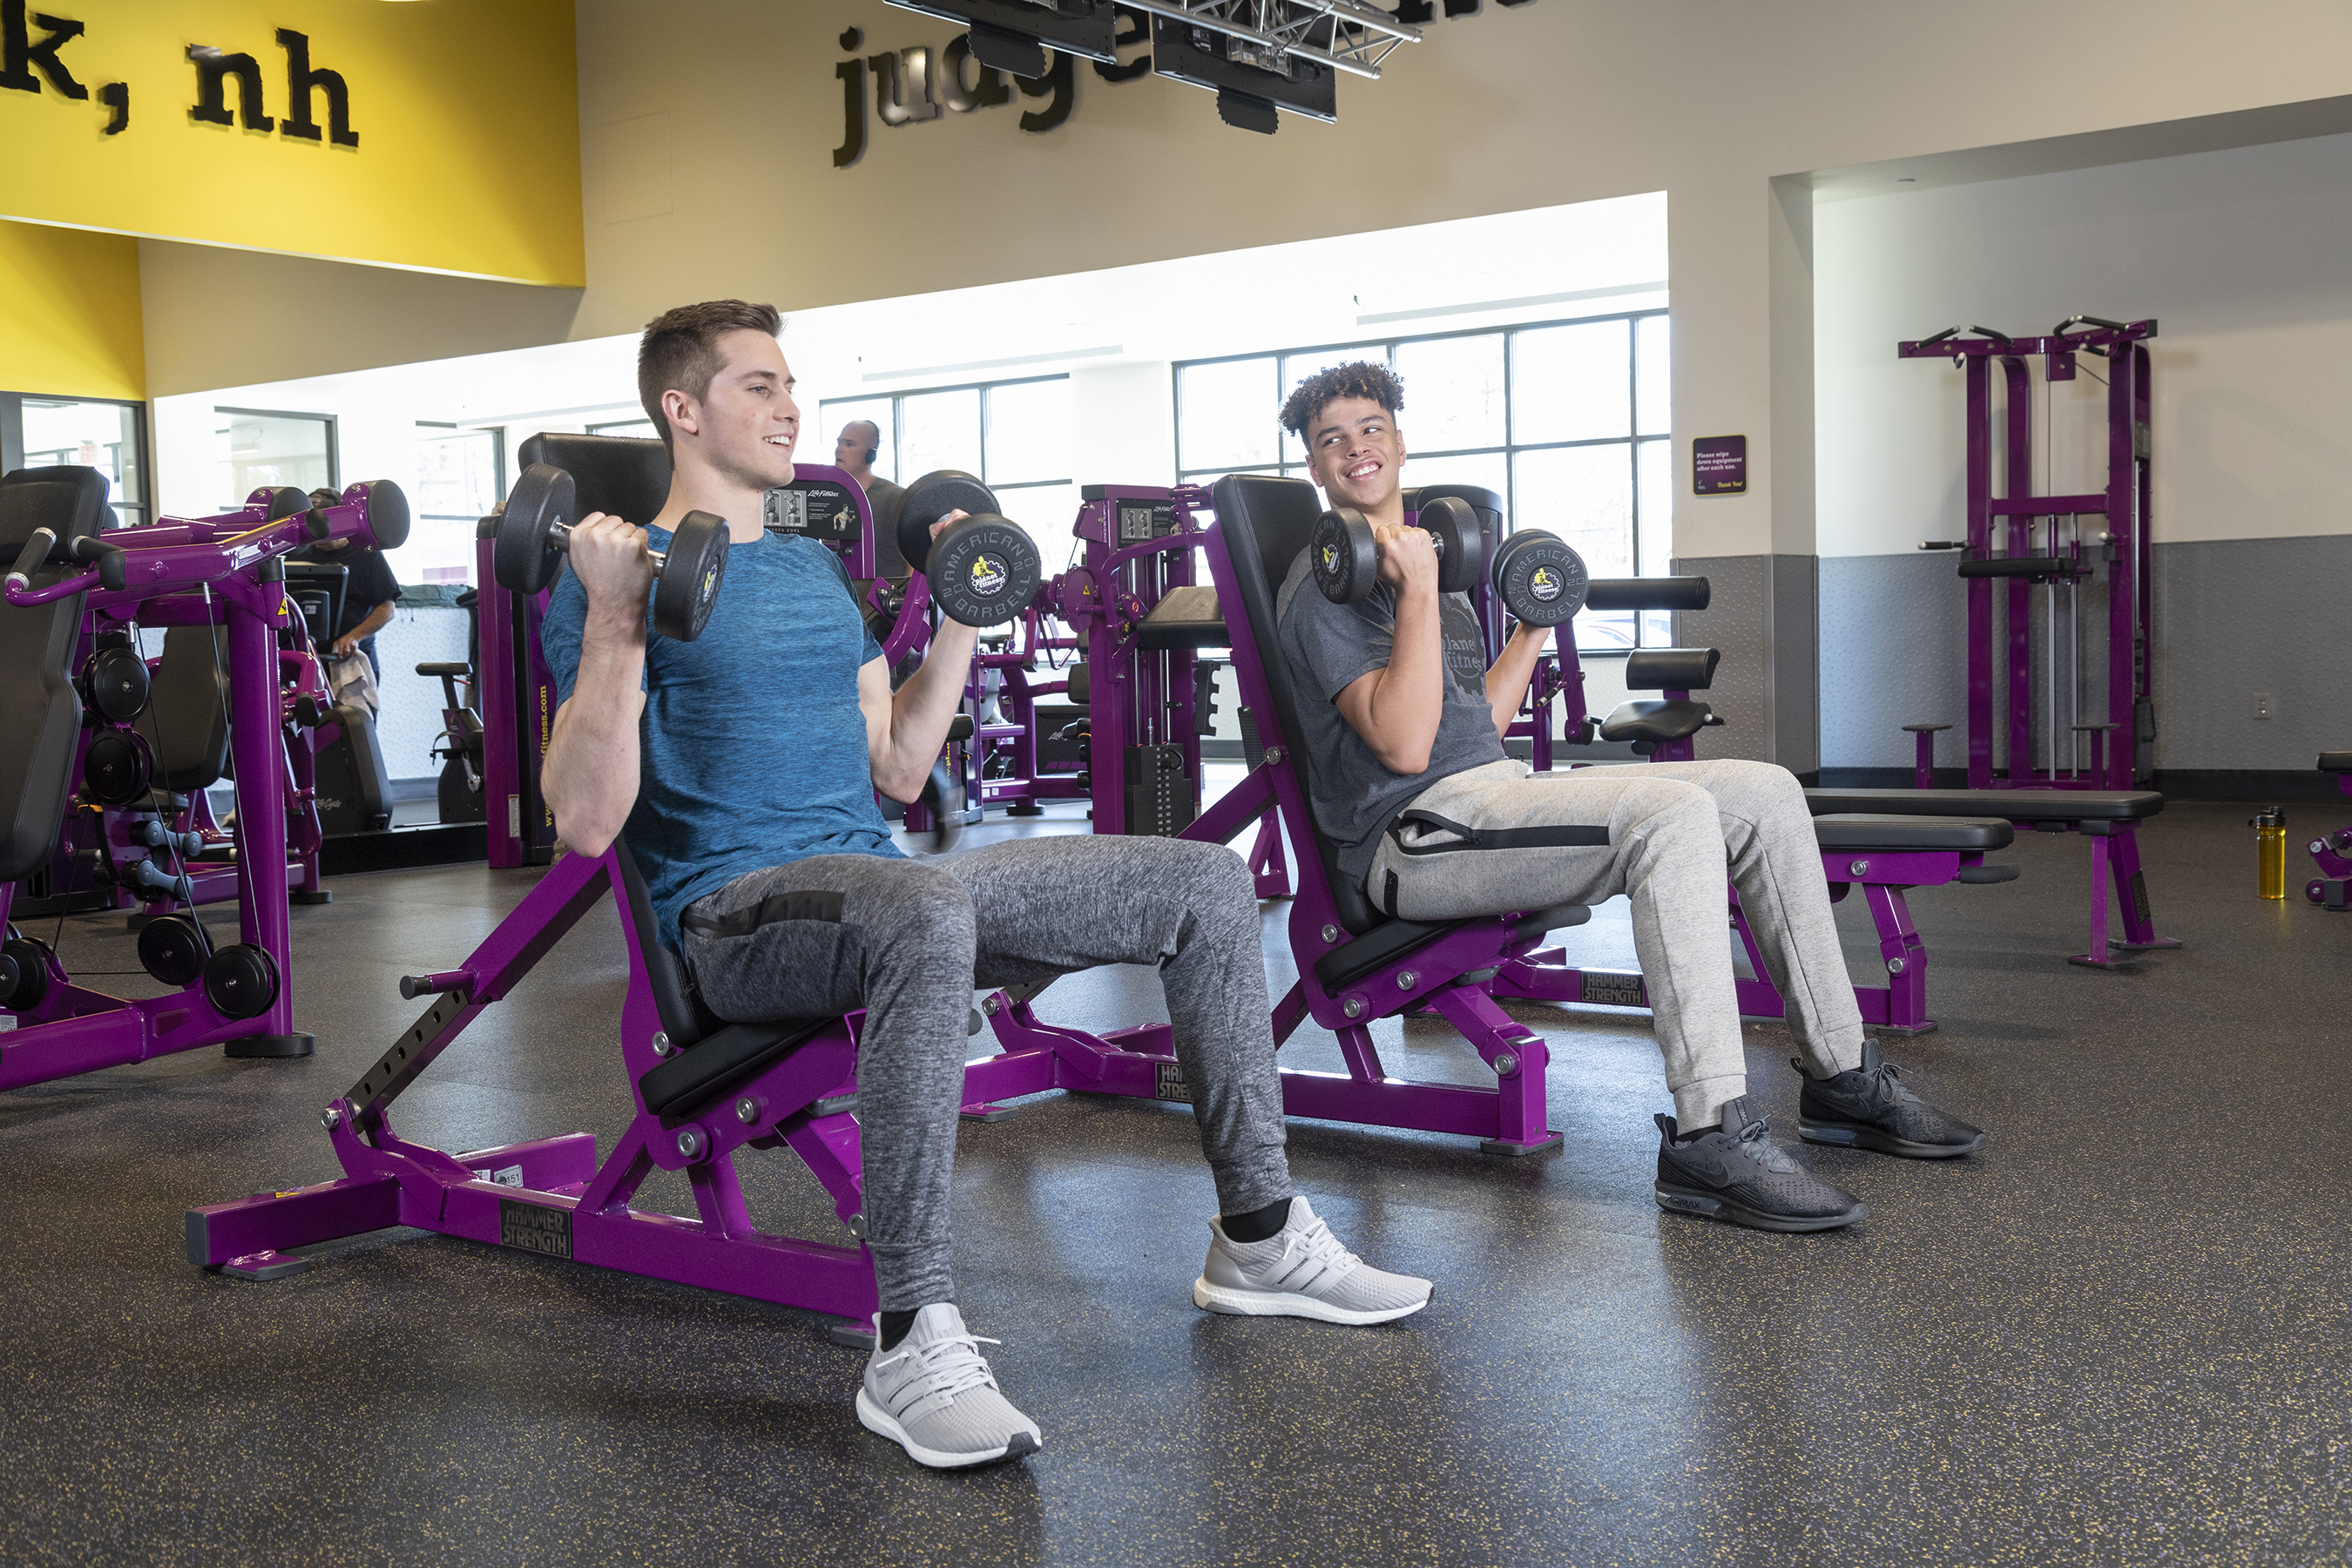 Planet Fitness - home of the Judgement Free Zone® - invites high school teenagers ages 15 – 18 to work out for free at any of its more than 1,700 Planet Fitness locations throughout the United States from May 15 through September 1 as part of the nationwide Teen Summer Challenge initiative. For more information, including how to sign up beginning May 15, visit PlanetFitness.com/TeenSummerChallenge.